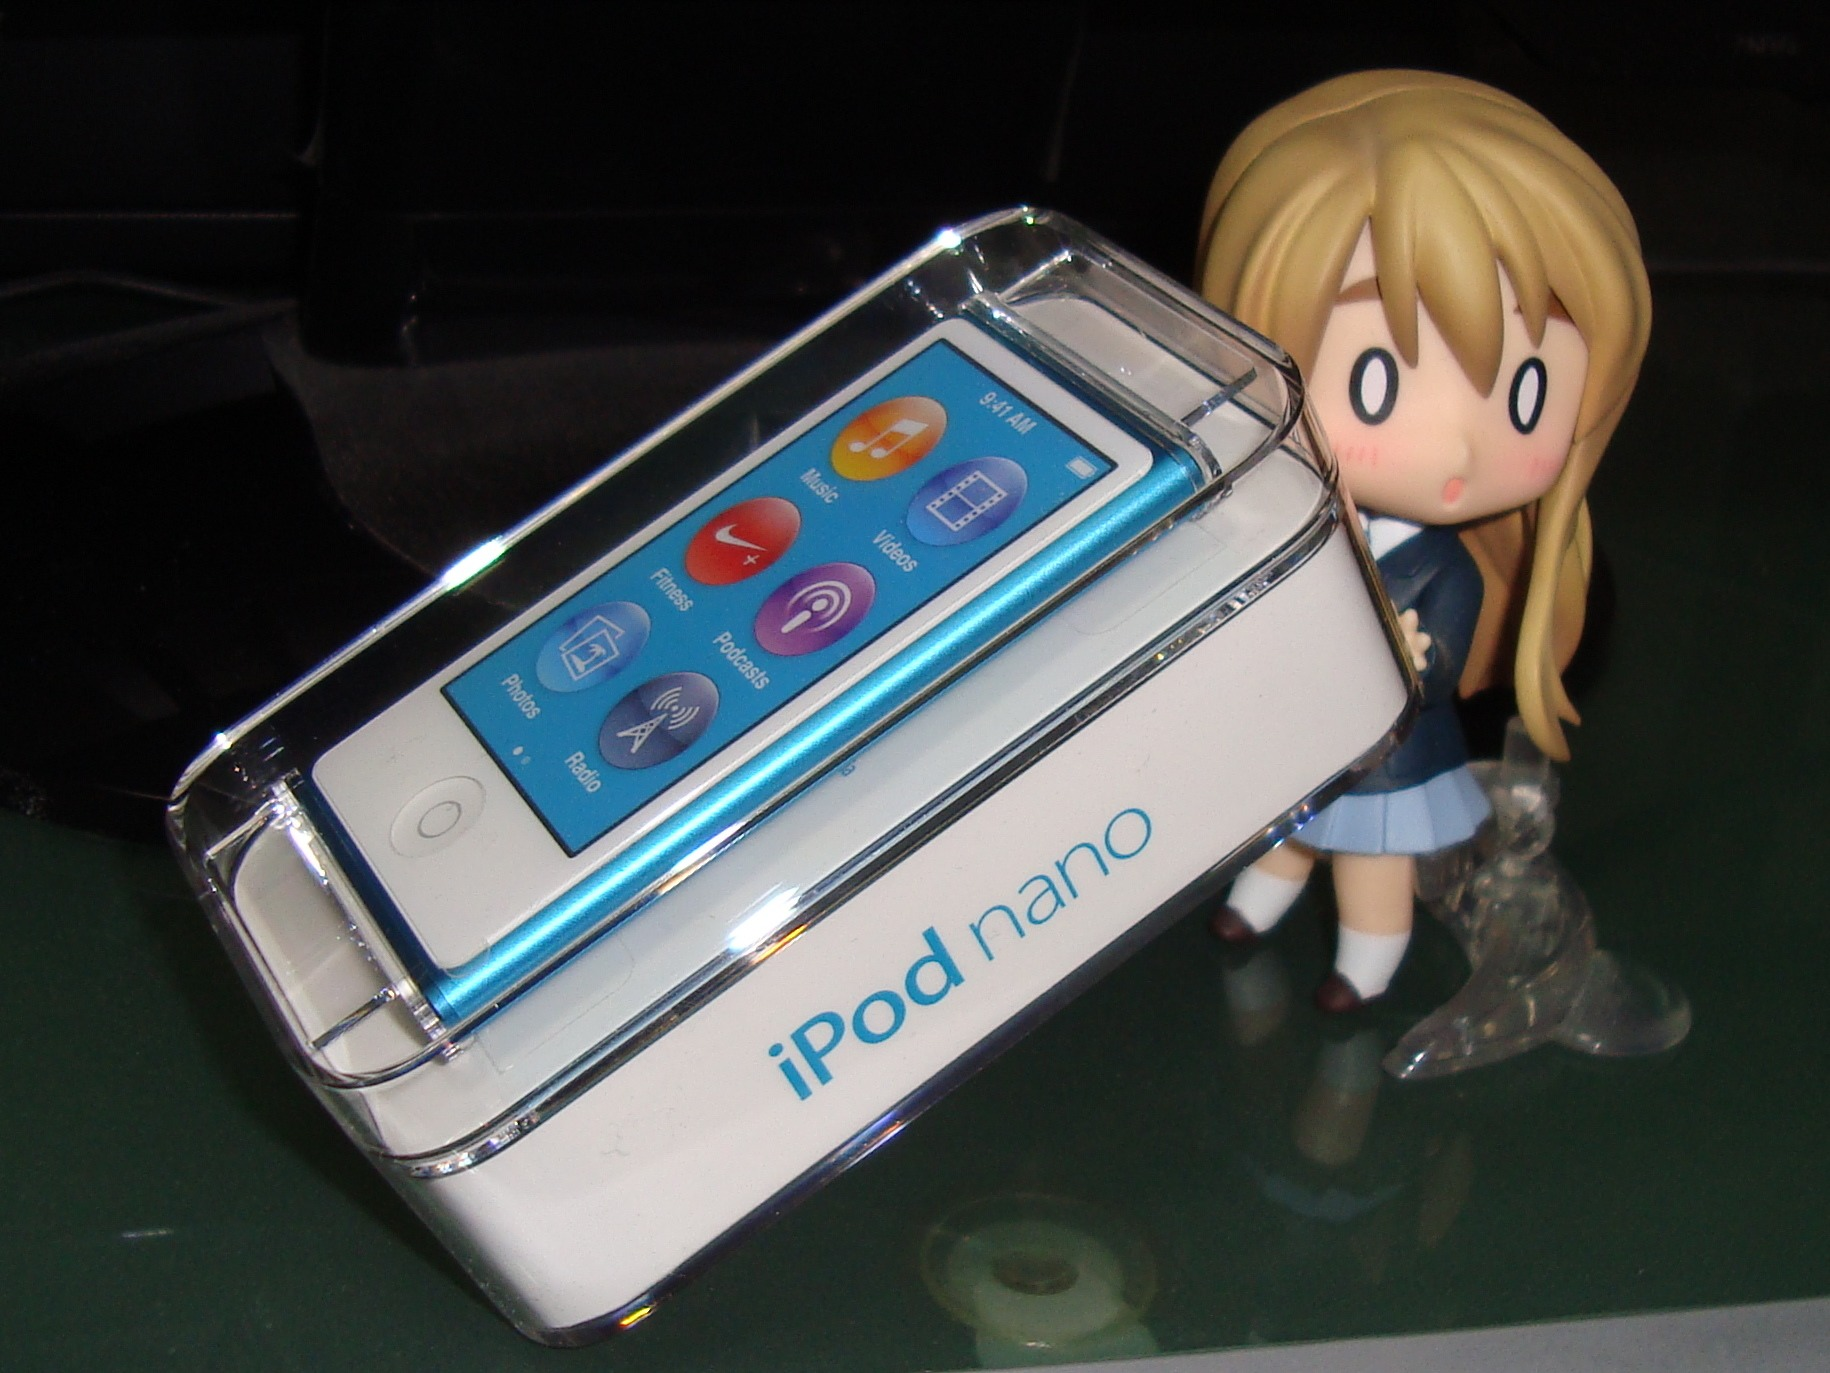 iPod nano 7G (blue, box, Flickr user Setuka)